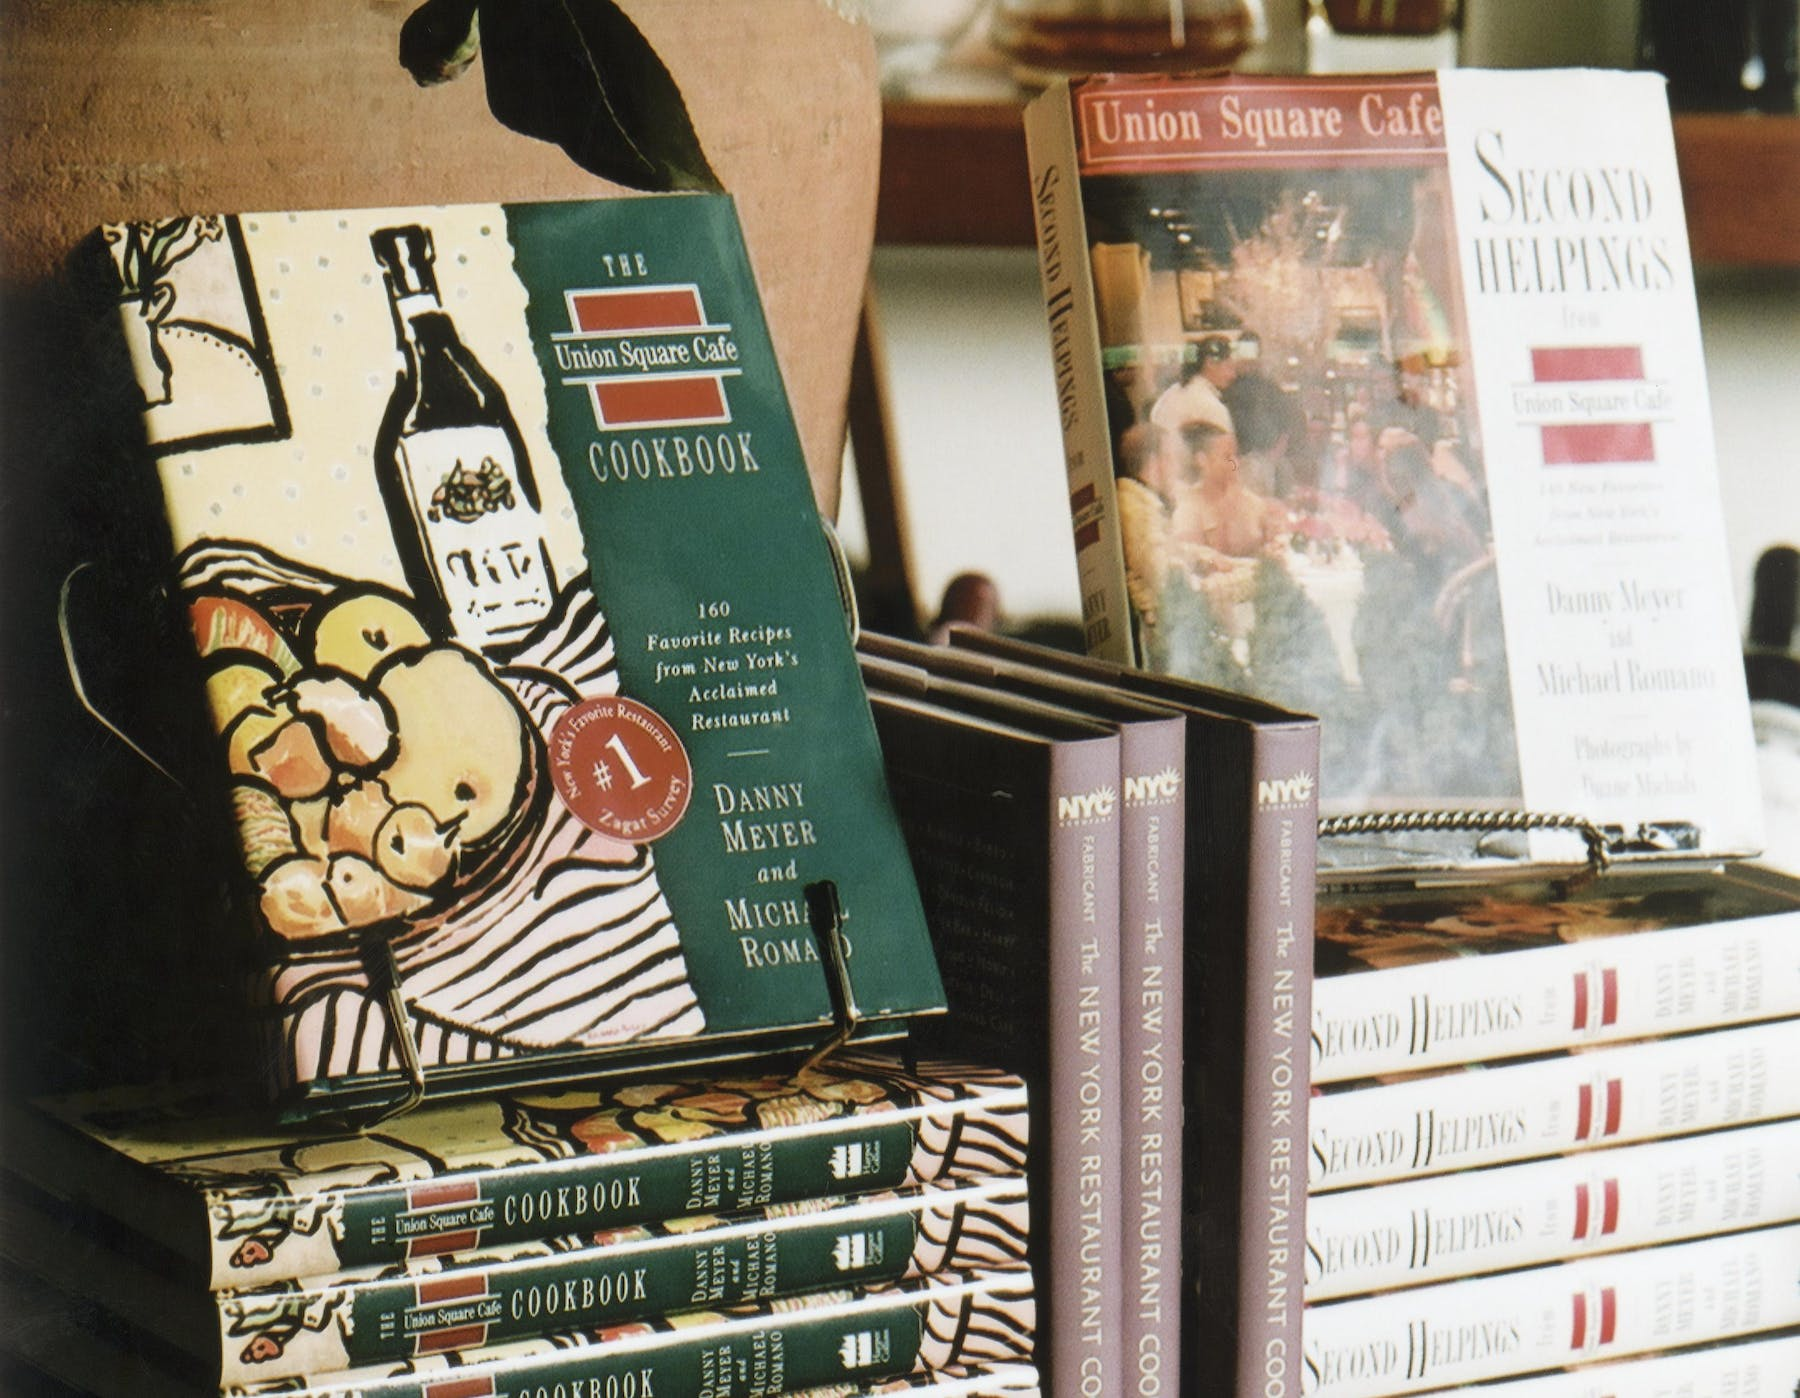 a stack of Union Square Cafe cookbooks